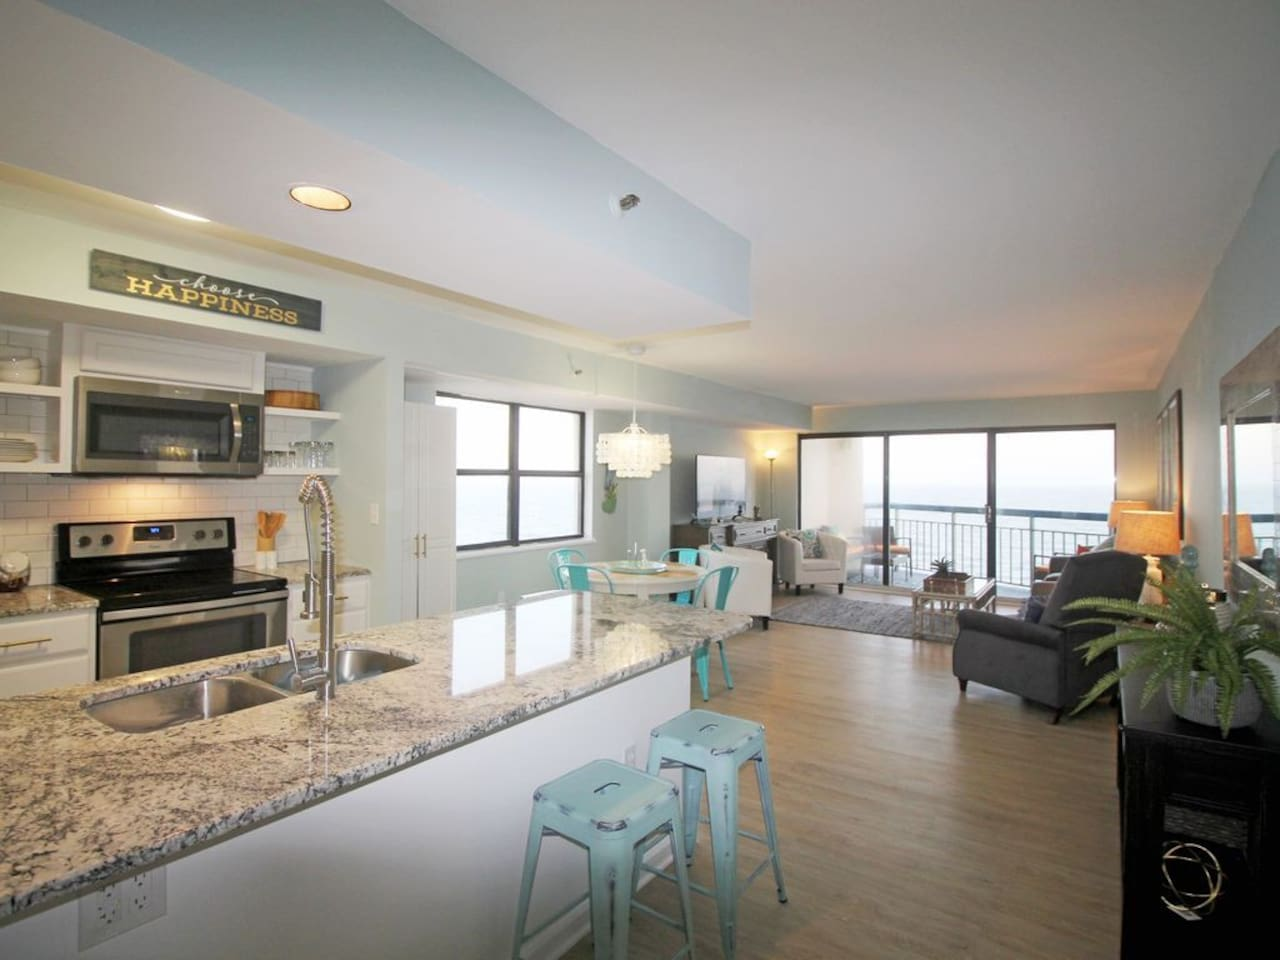 Direct Ocean Front Condo with Panoramic views! Stylishly renovated with tasteful beachy decor.